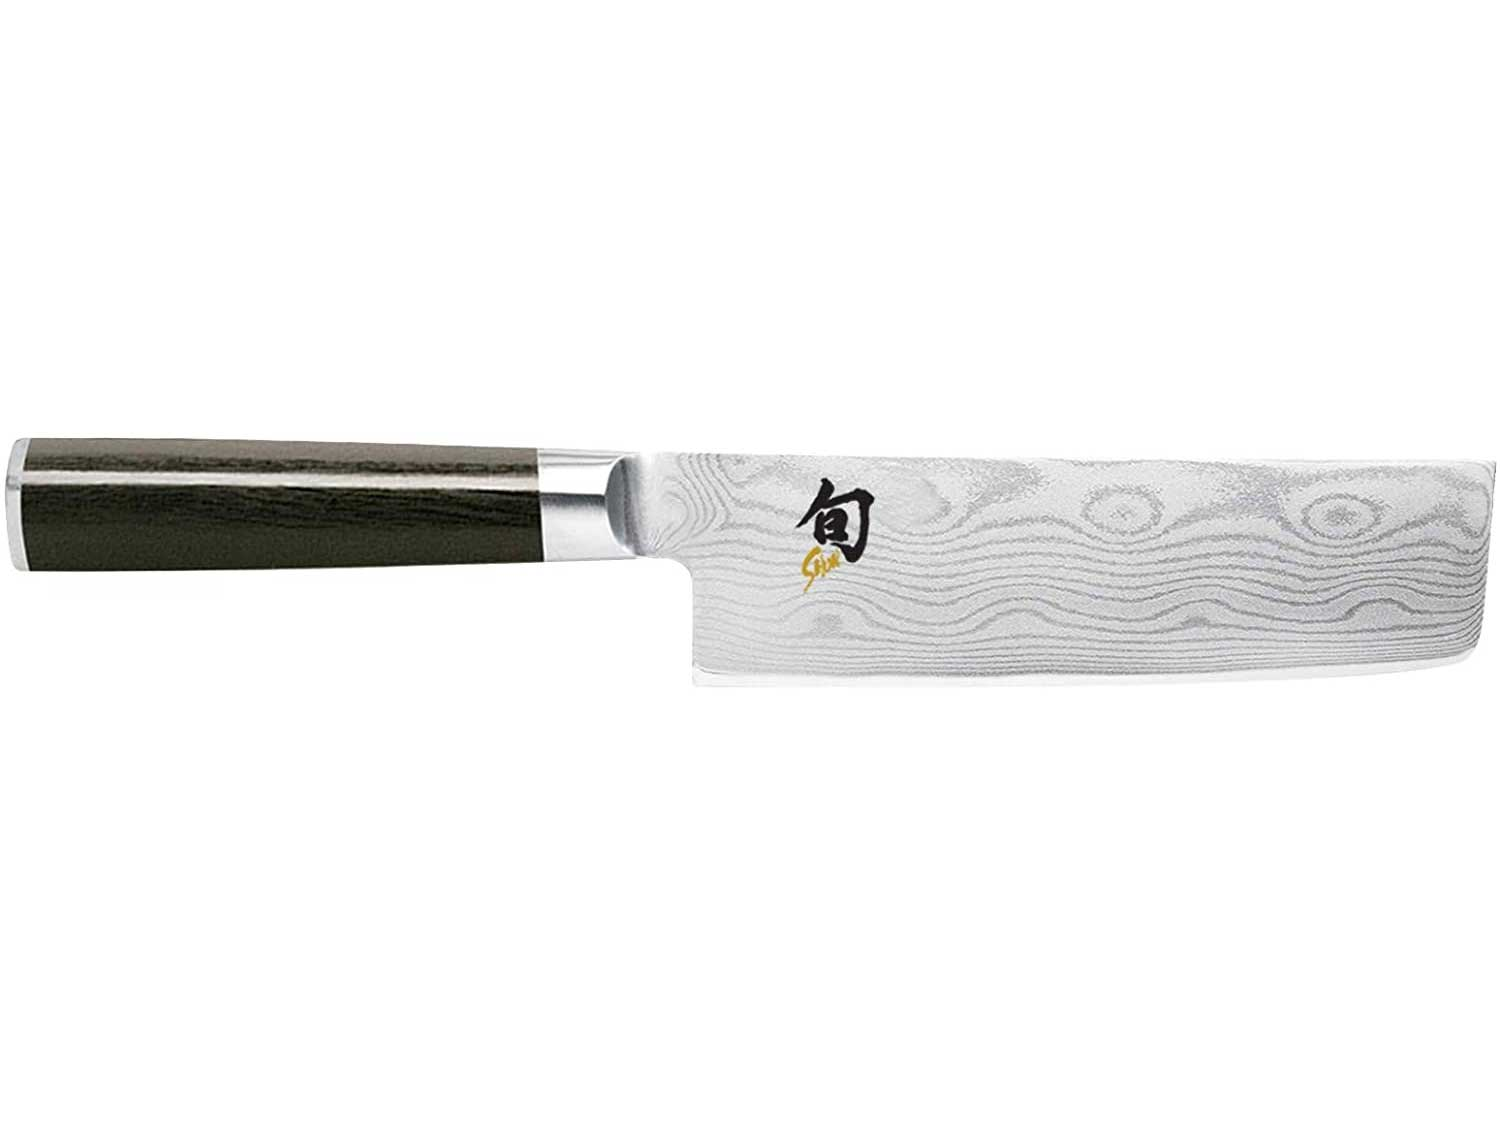 """Shun Cutlery Classic 6.5"""" Nakiri Knife; Kitchen Knife Handcrafted in Japan; Hand-Sharpened 16° Double-Bevel Steel Blade for Swift and Easy Precision Work; Beautiful D-Shaped Ebony PakkaWood Handle"""